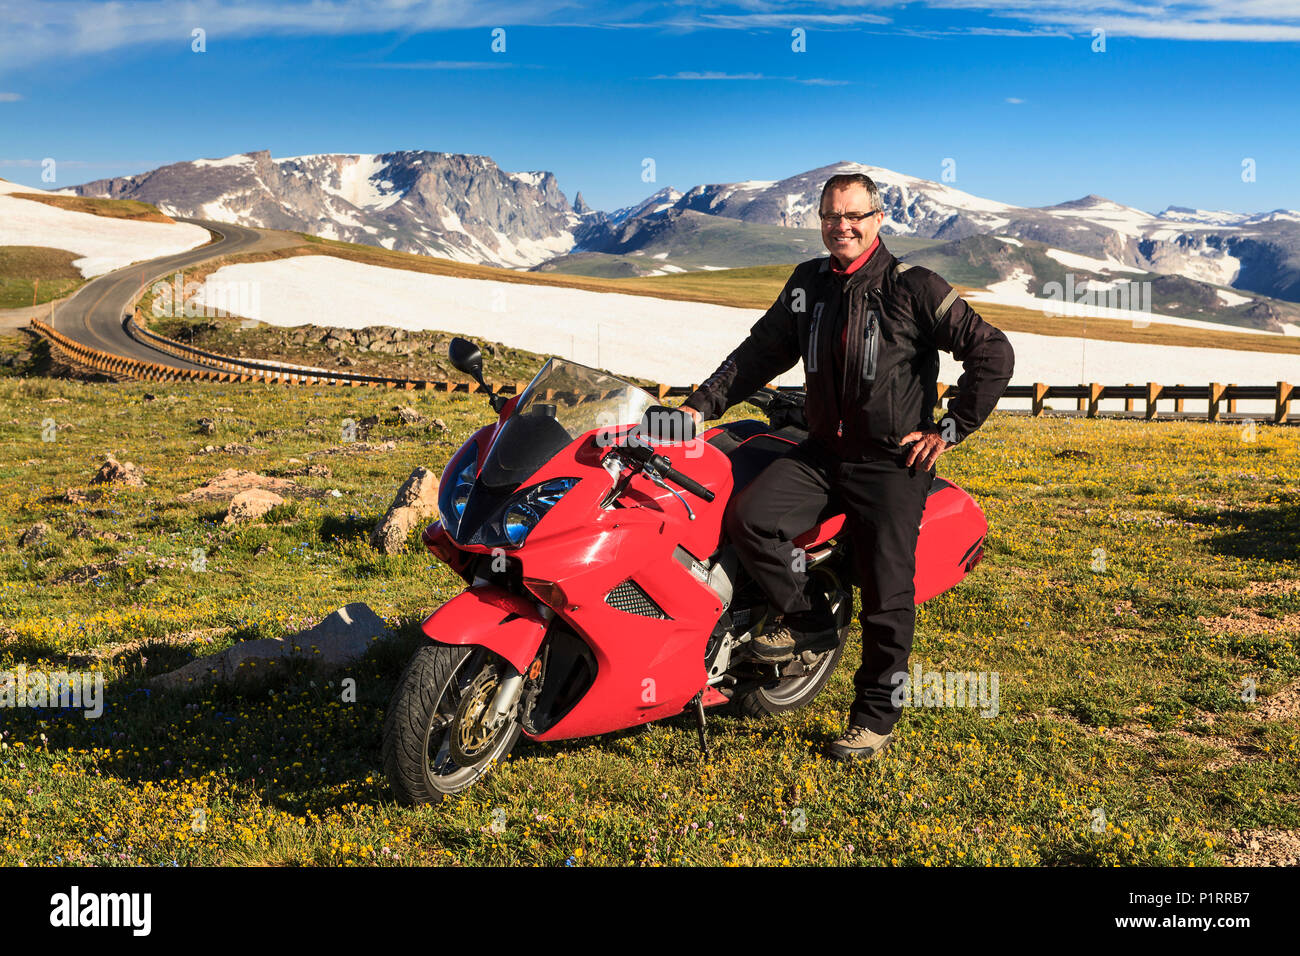 View from the Beartooth Highway of the Beartooth Mountains and a man posing with a motorcycle parked on the roadside Stock Photo